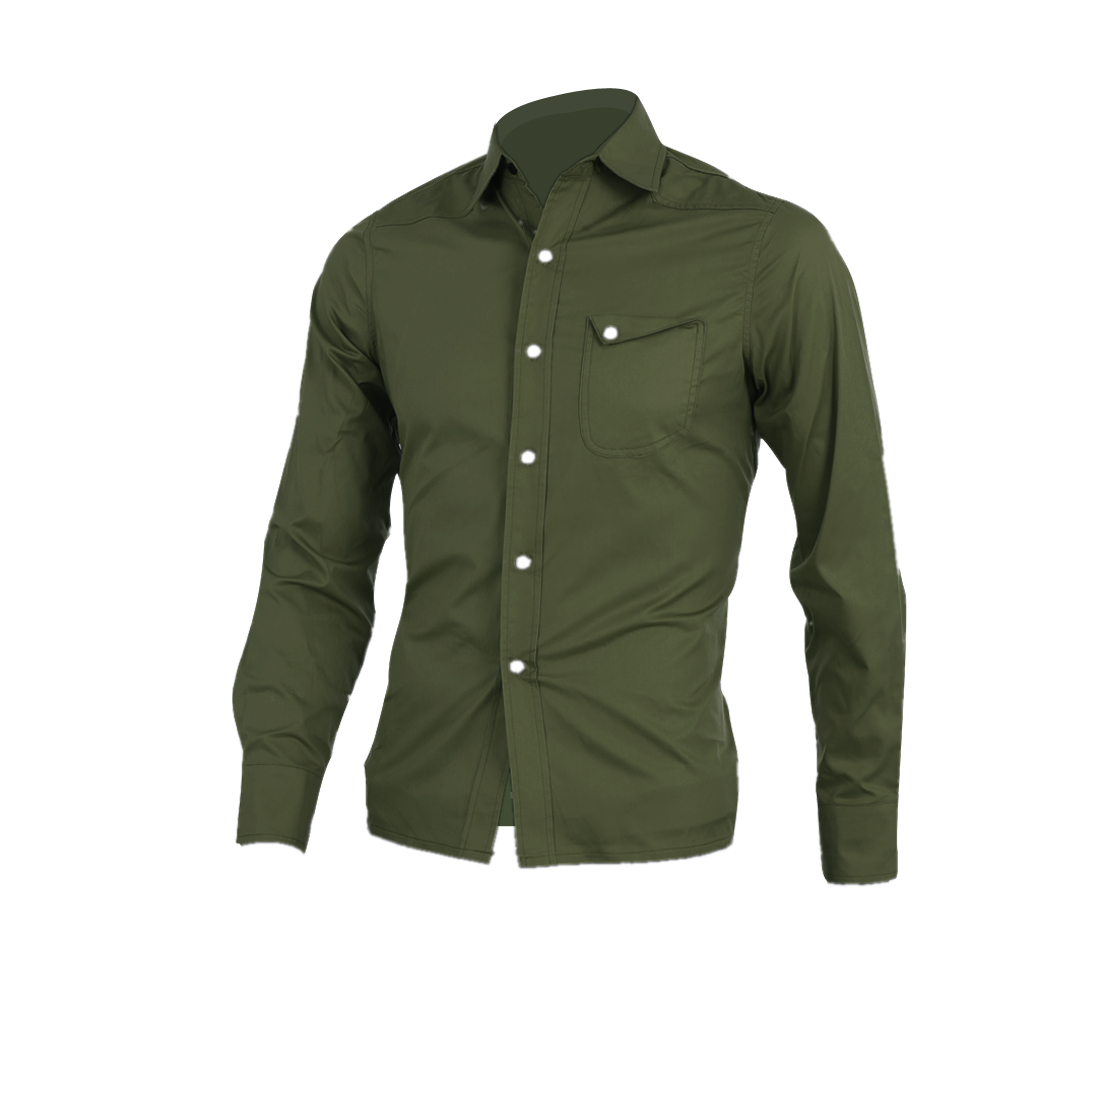 Men Chest Pocket Front Button Closure Round Trim Top Shirt S Olive Green